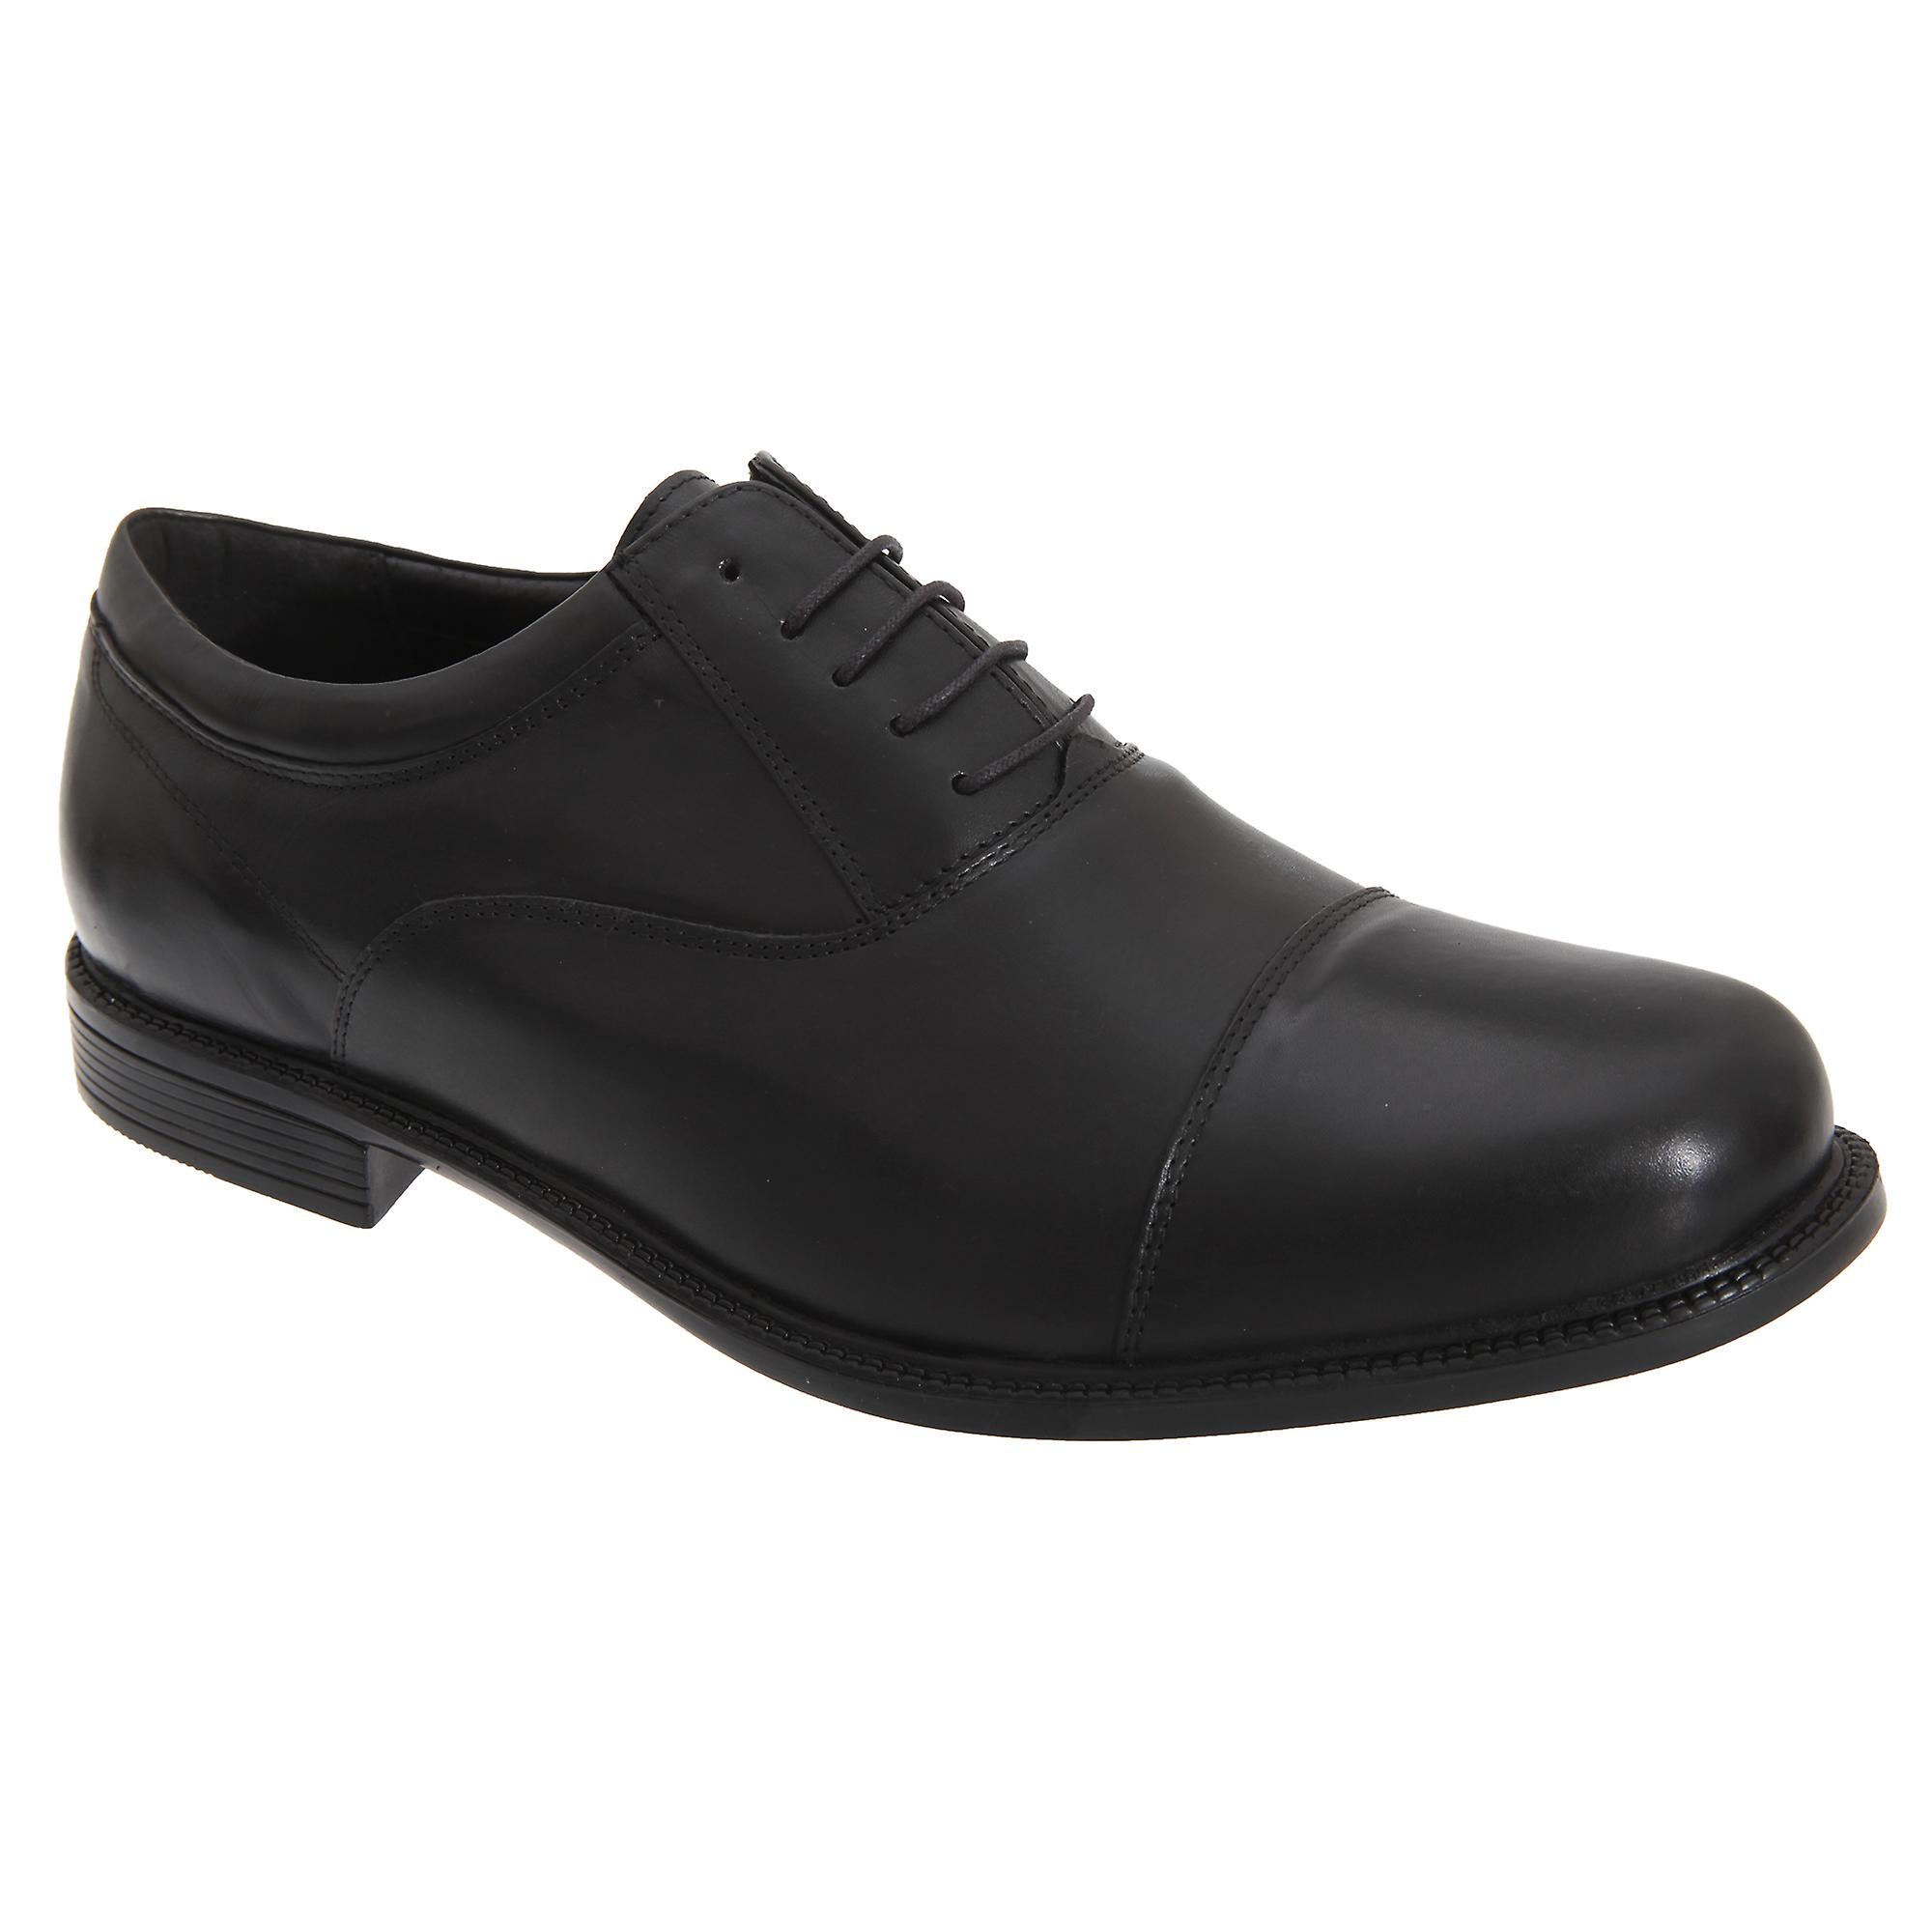 Roamers Mens Fuller Fitting Capped Leather Oxford Shoes